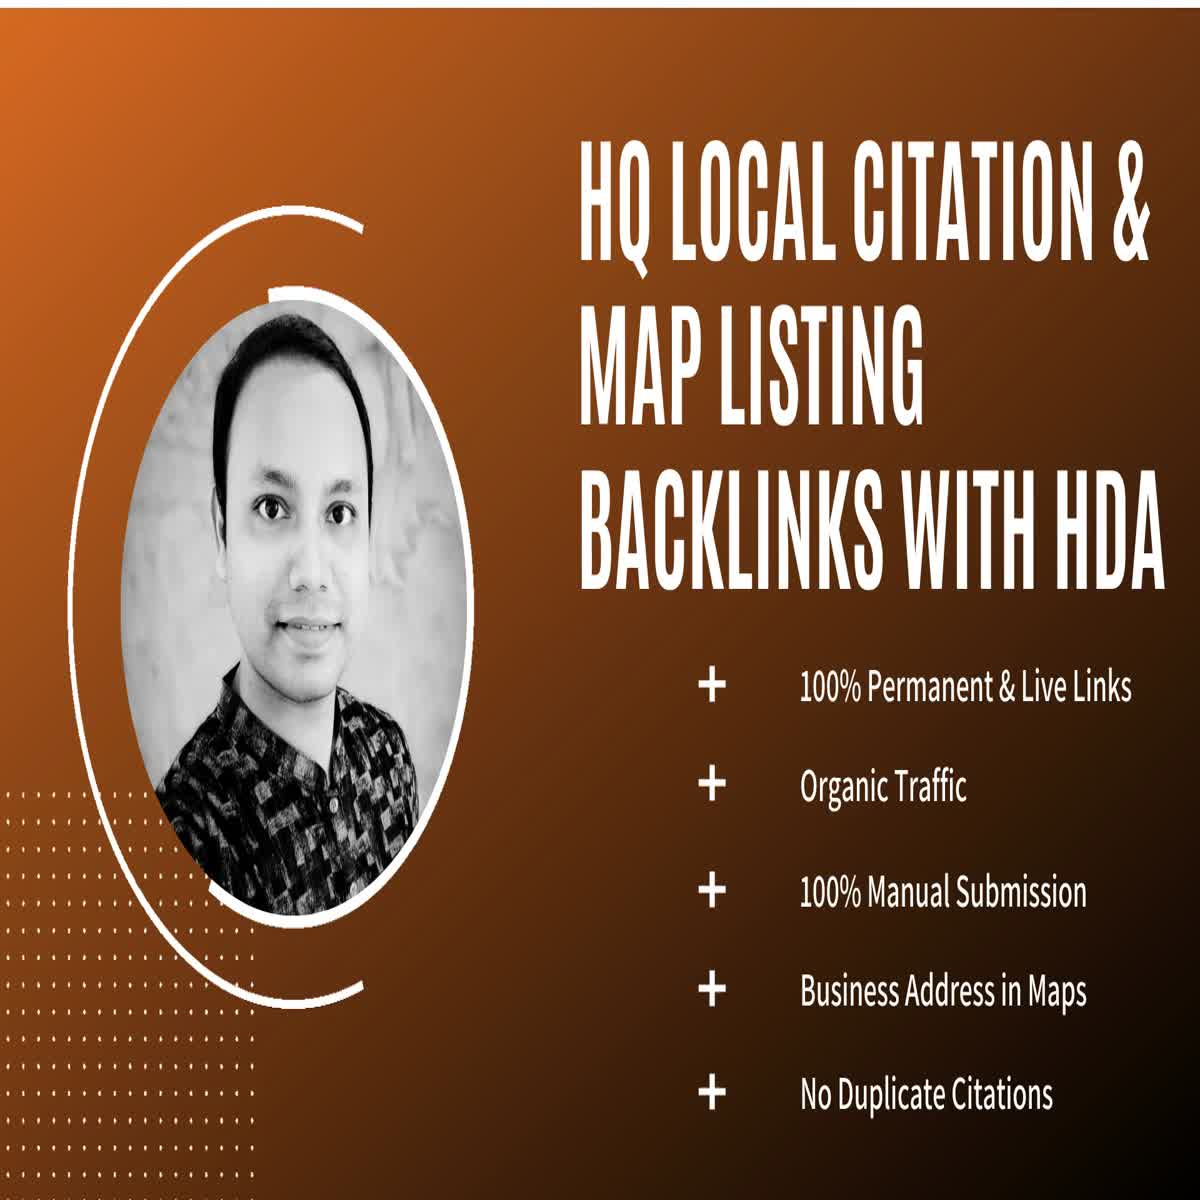 50 HQ Local Citation or Business Listing & Map Listing Backlinks with High DA